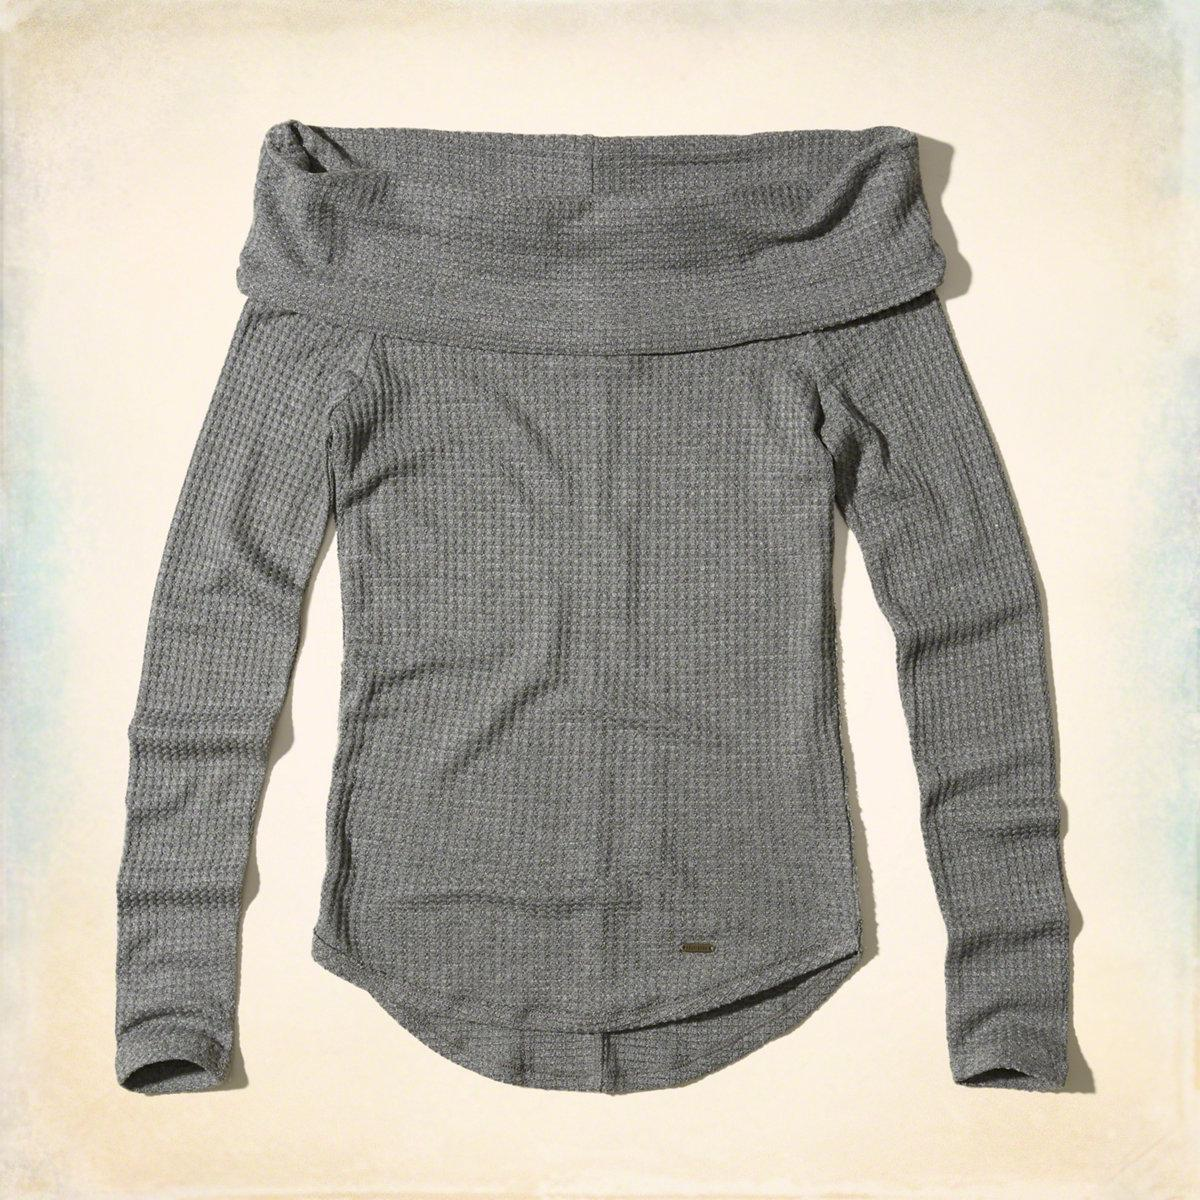 e21159711a39e Lyst - Hollister Must-have Off-the-shoulder Waffle Top in Gray